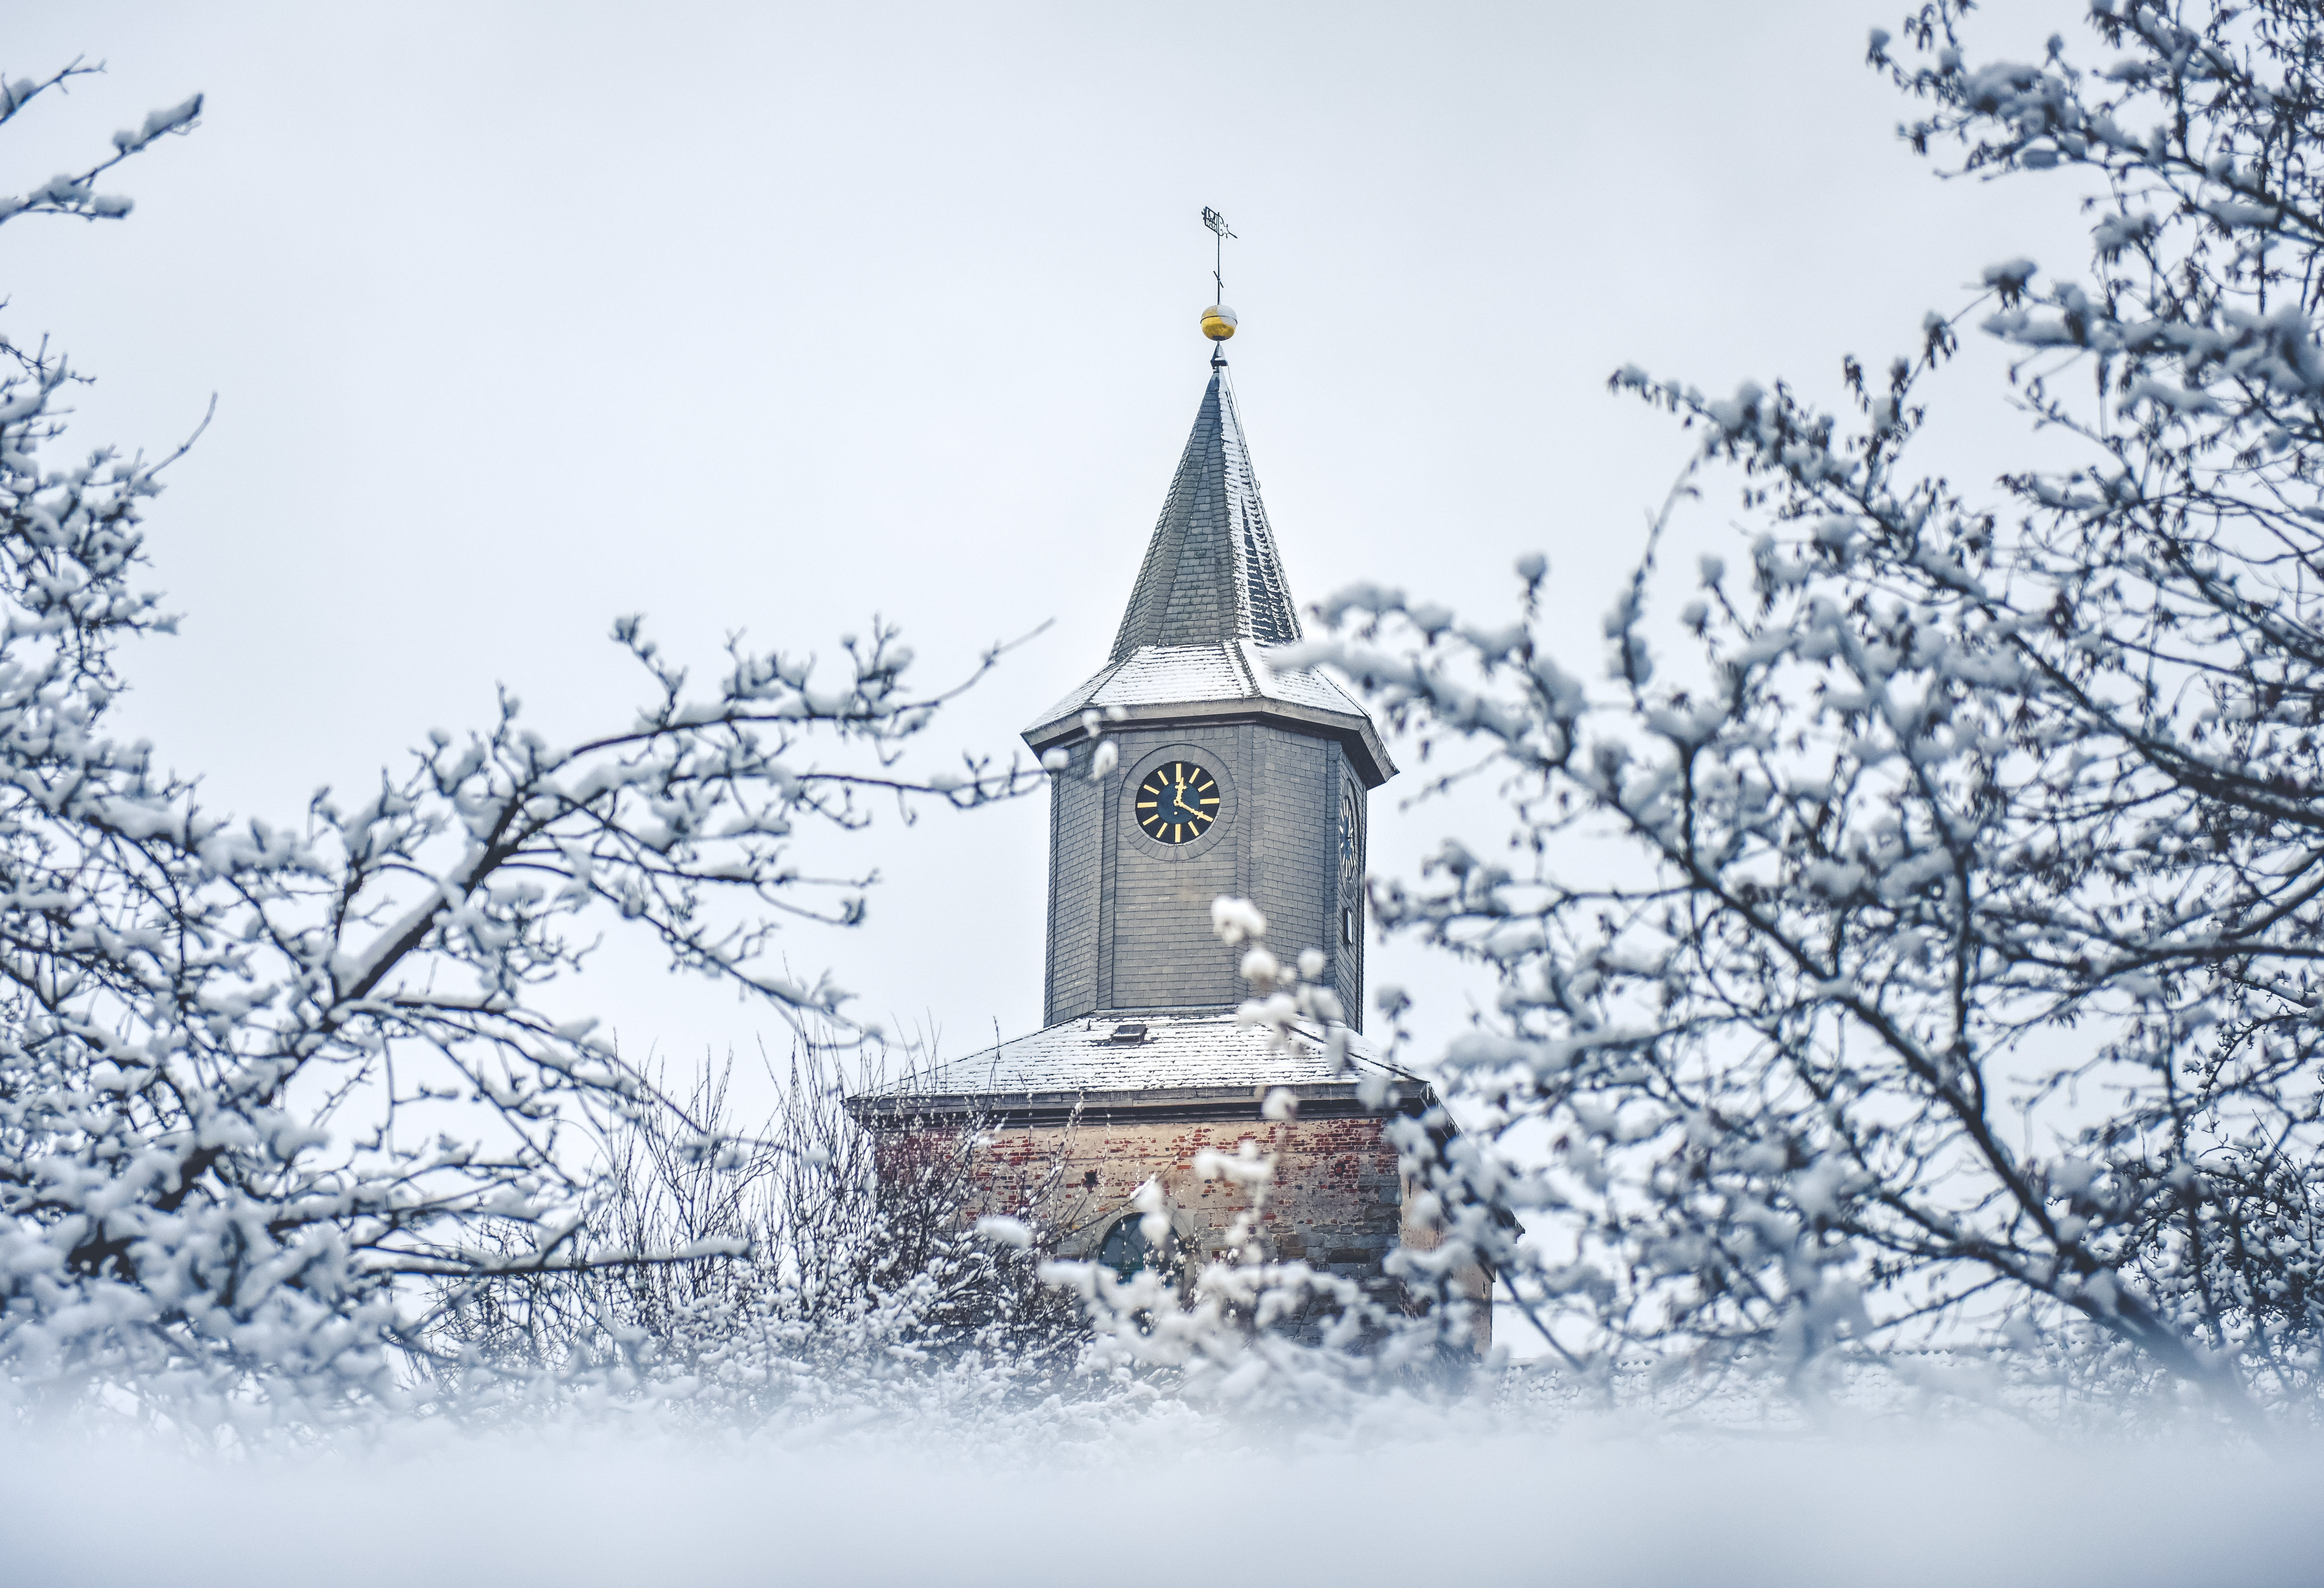 Free stock photo of snow, winter, church